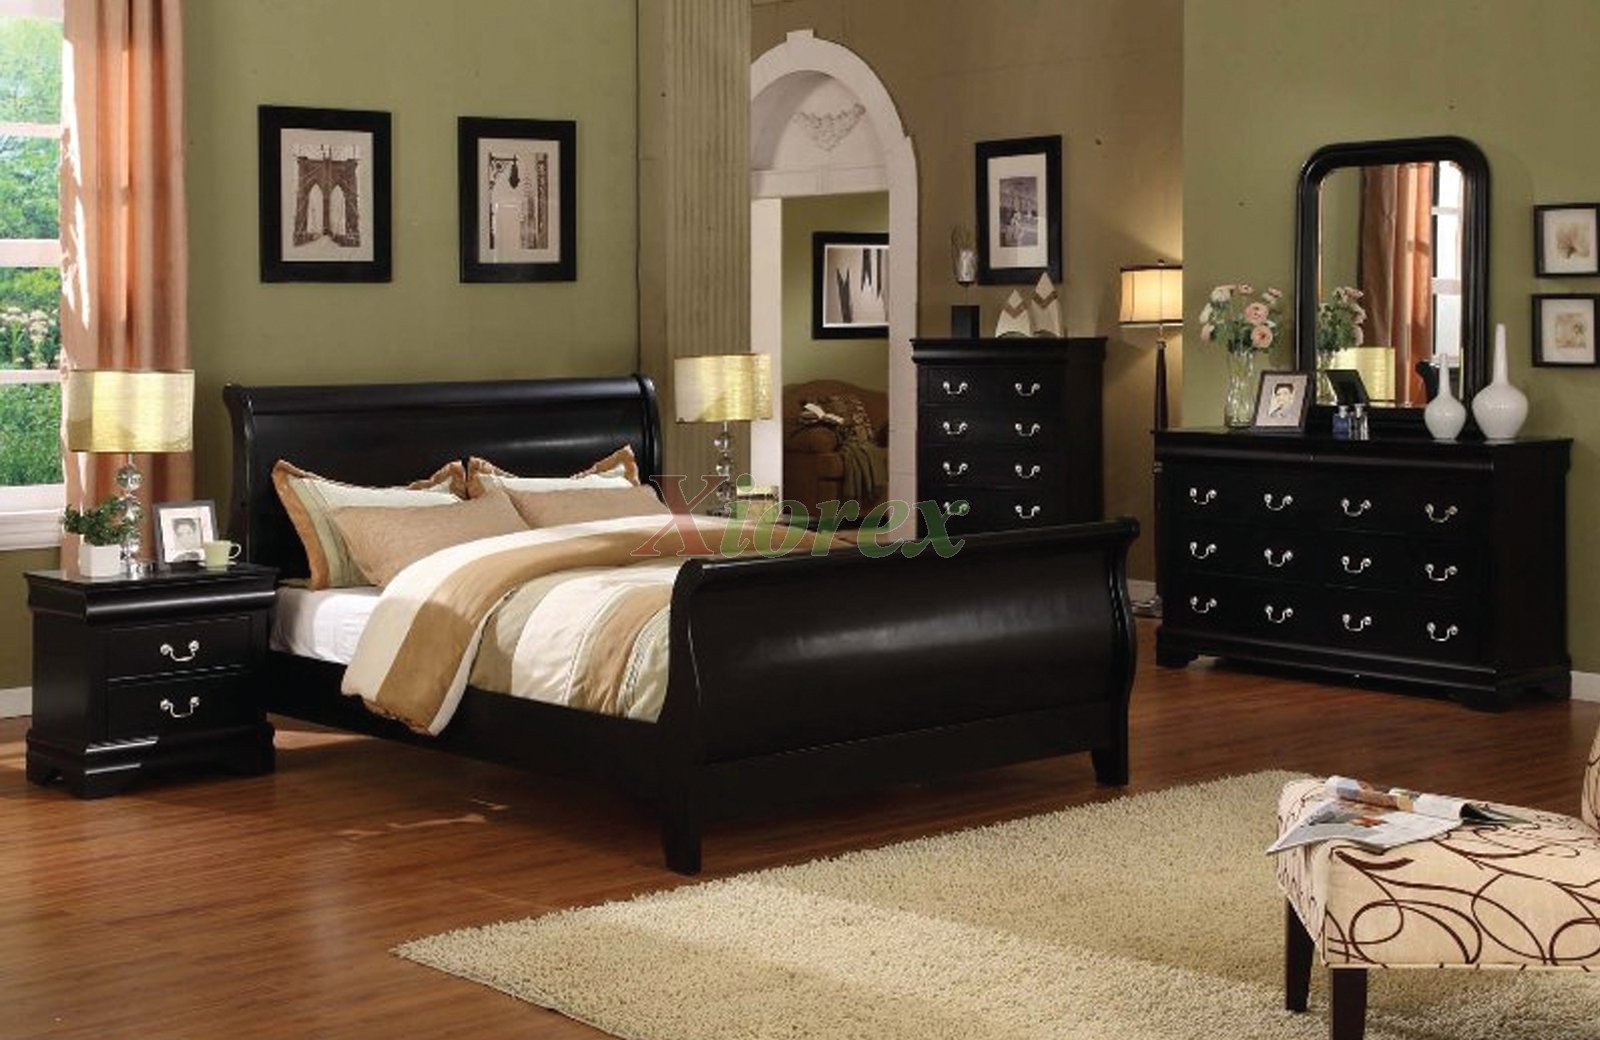 Outstanding Bedroom Furniture Sets 1600 x 1040 · 268 kB · jpeg